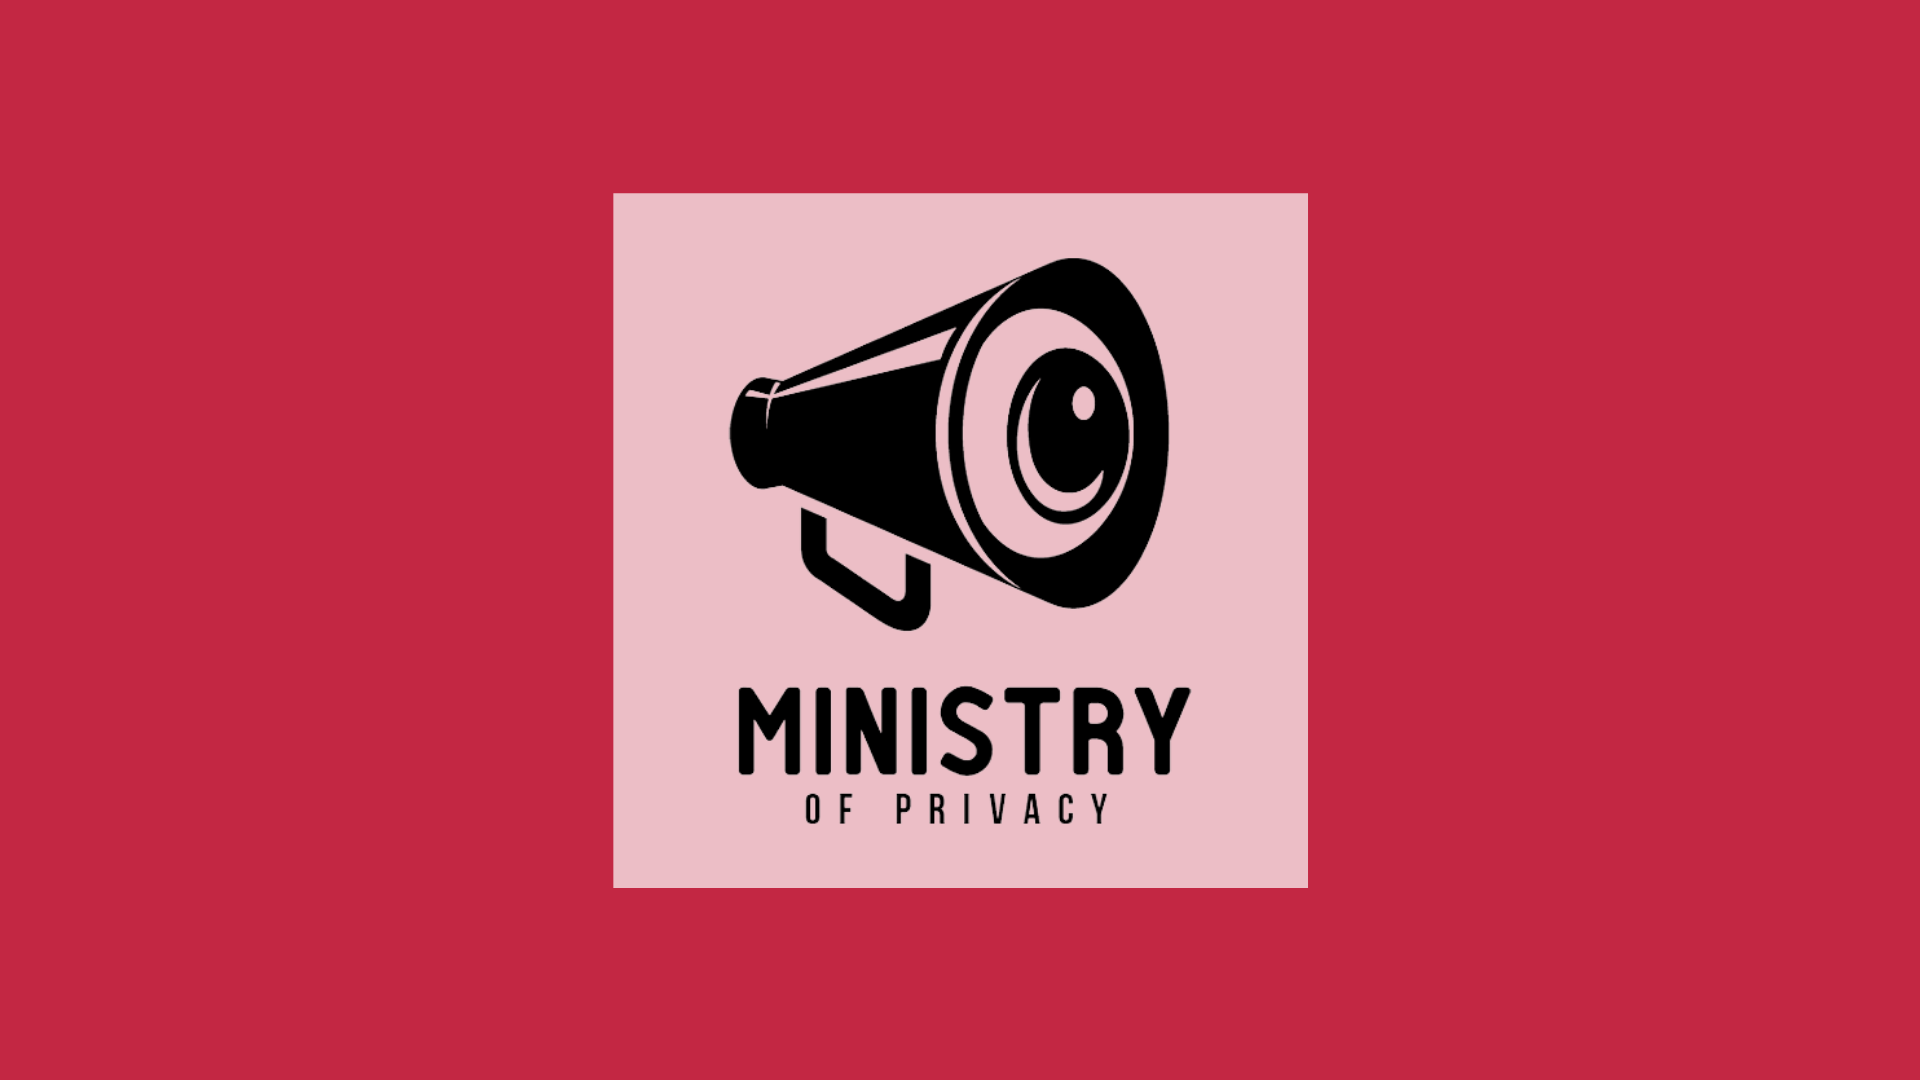 Ministry of Privacy